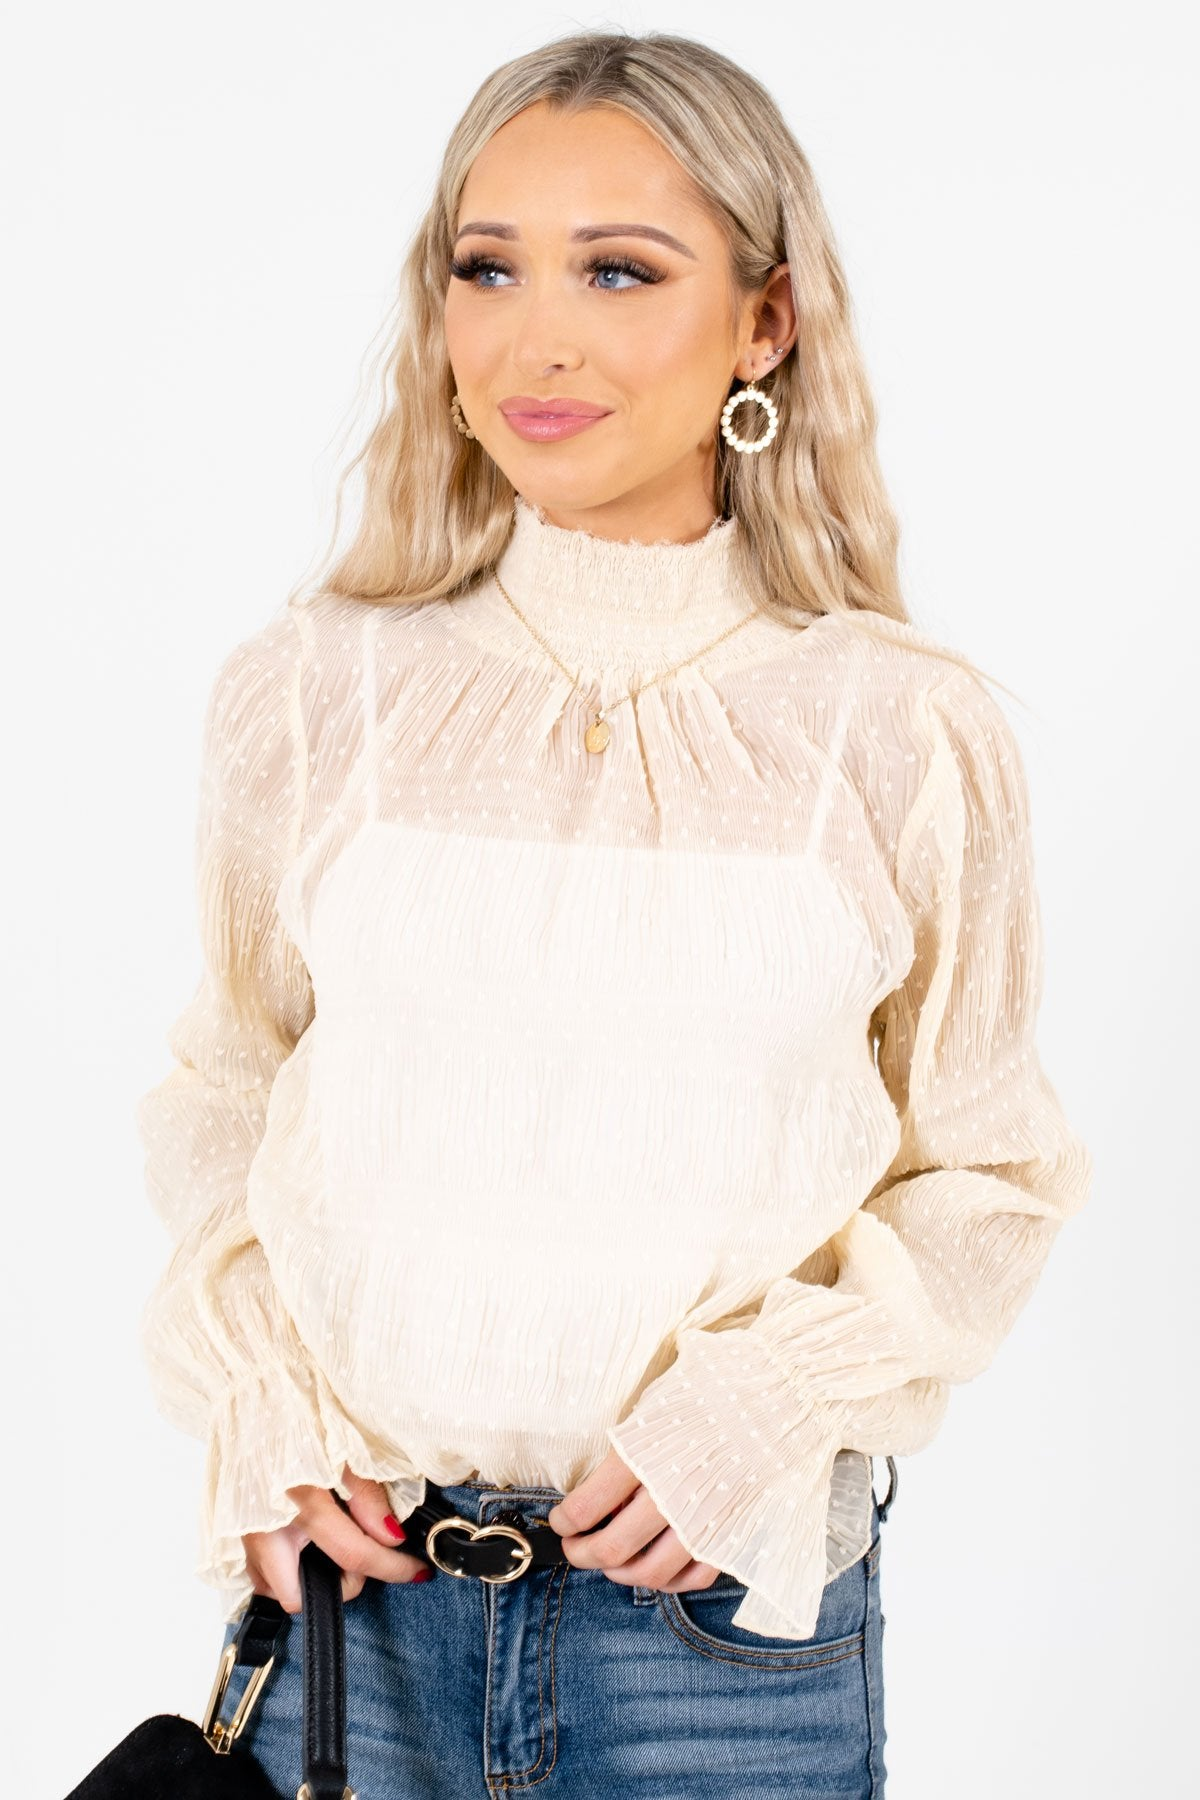 Cream Lightweight Flowy Boutique Blouses for Women